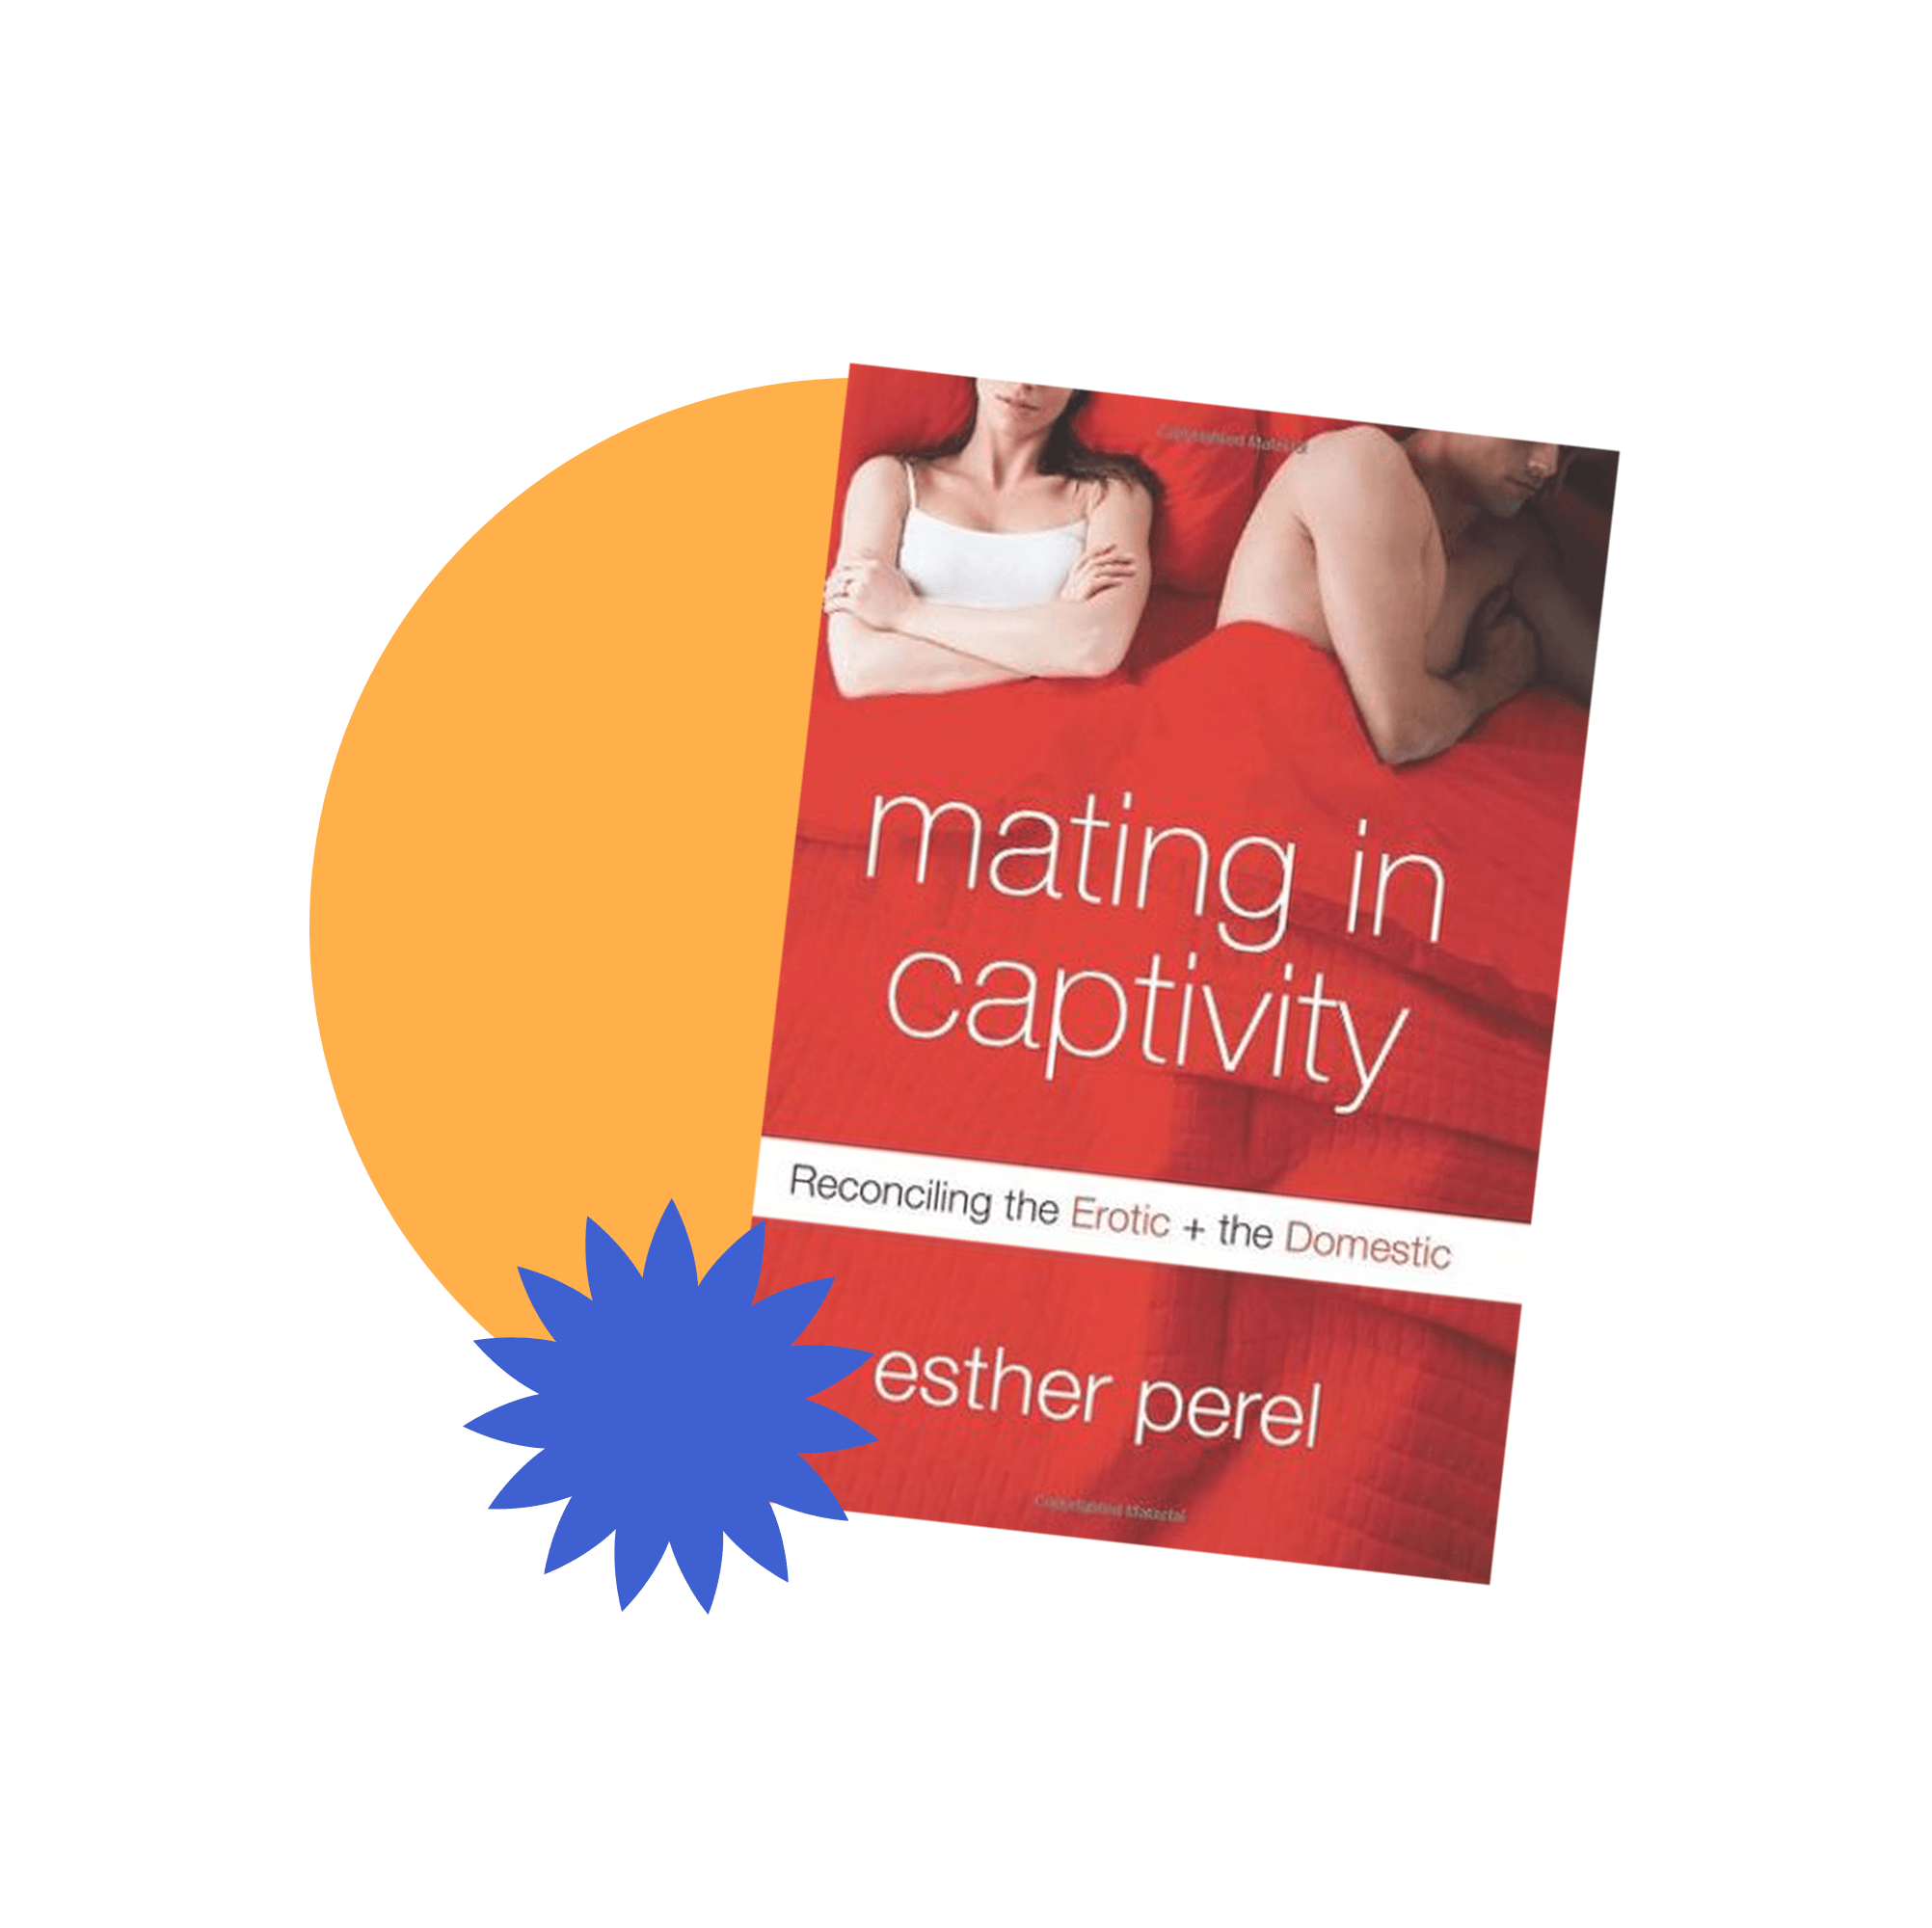 Book jacket cover for Mating in Captivity: Reconciling the Erotic and the Domestic by Esther Perel